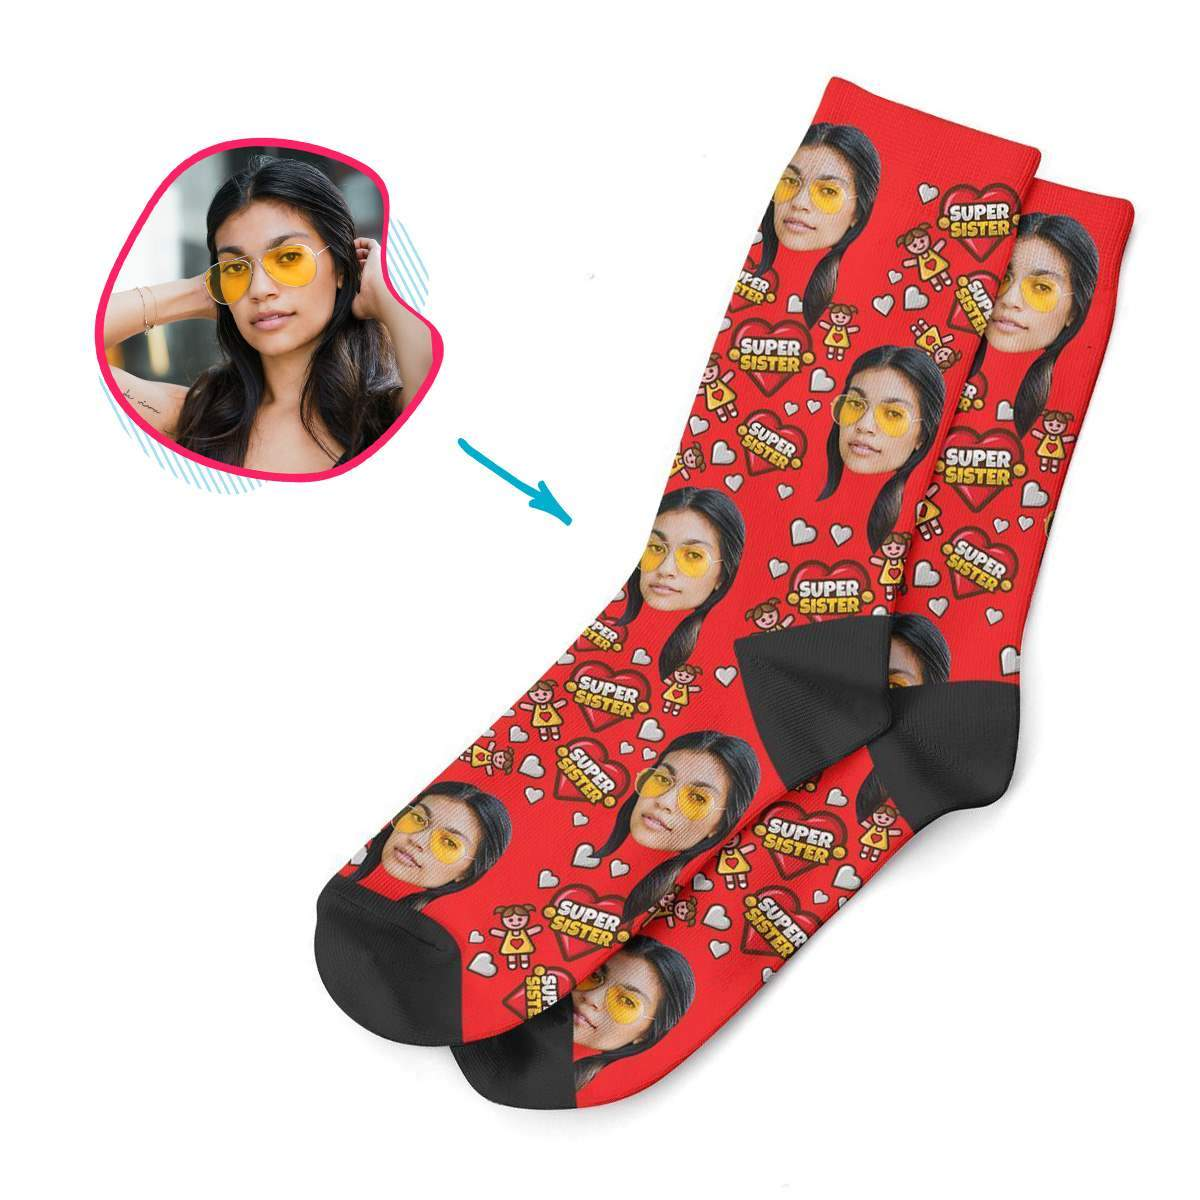 darkblue Super Sister socks personalized with photo of face printed on them